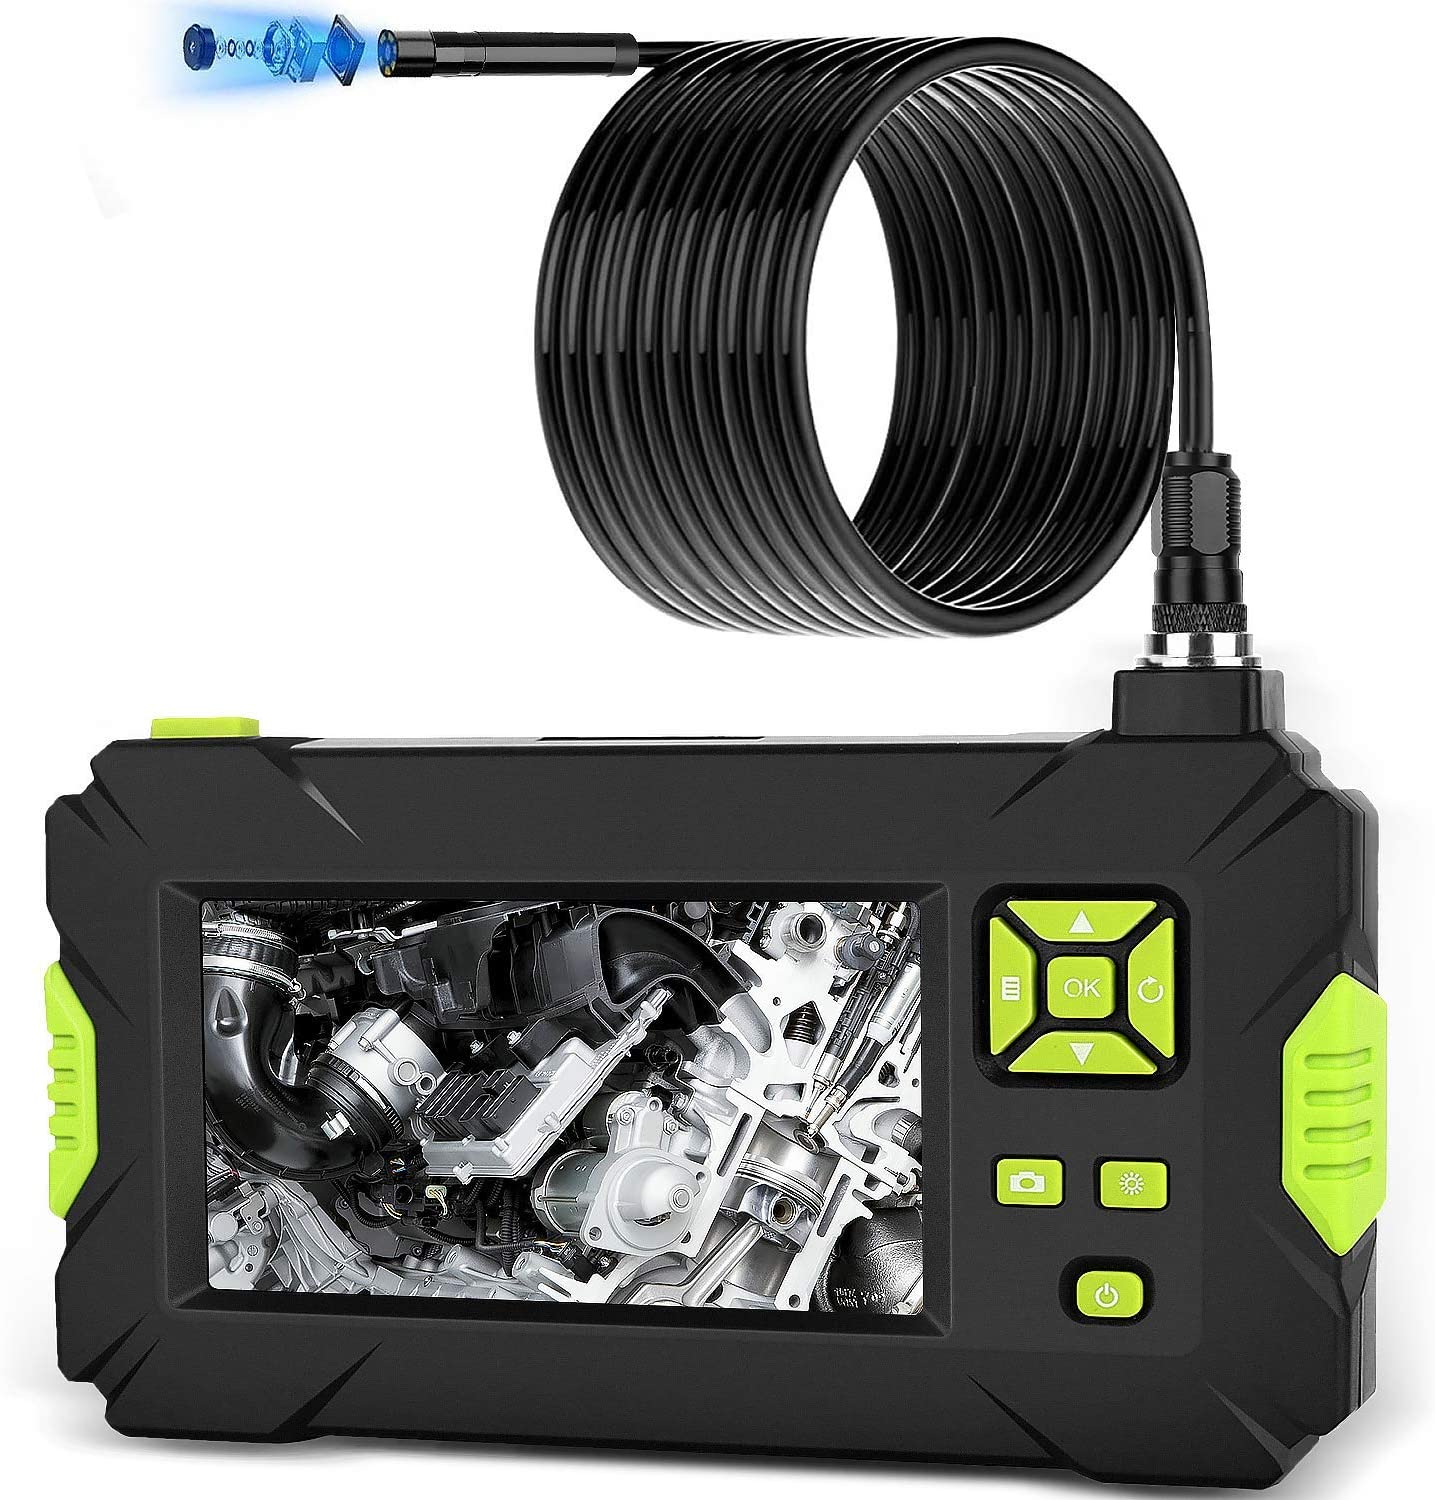 4.5 Inches HD IP67 Waterproof Industrial Endoscope Borescope 1080P Display IPS Screen 32 GB Card 9.84 FT Cable 6 LED Lights with Dual Lens YUNSHAO 8mm Inspection Camera